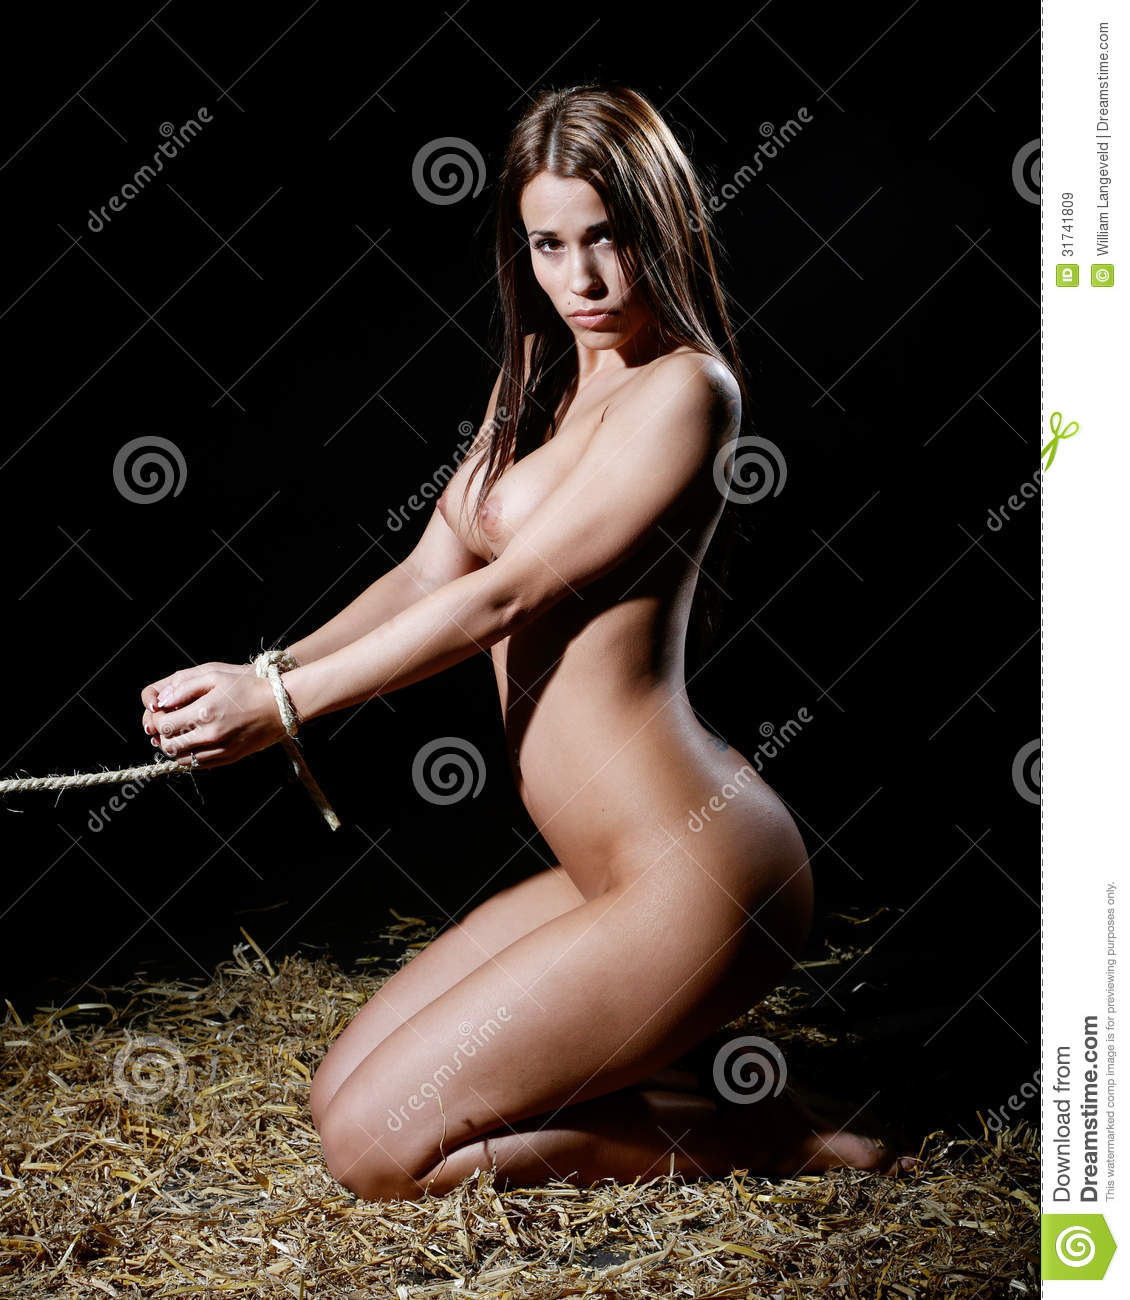 Nude Or Naked Woman In Bondage Style With Rope Stock Image -7125